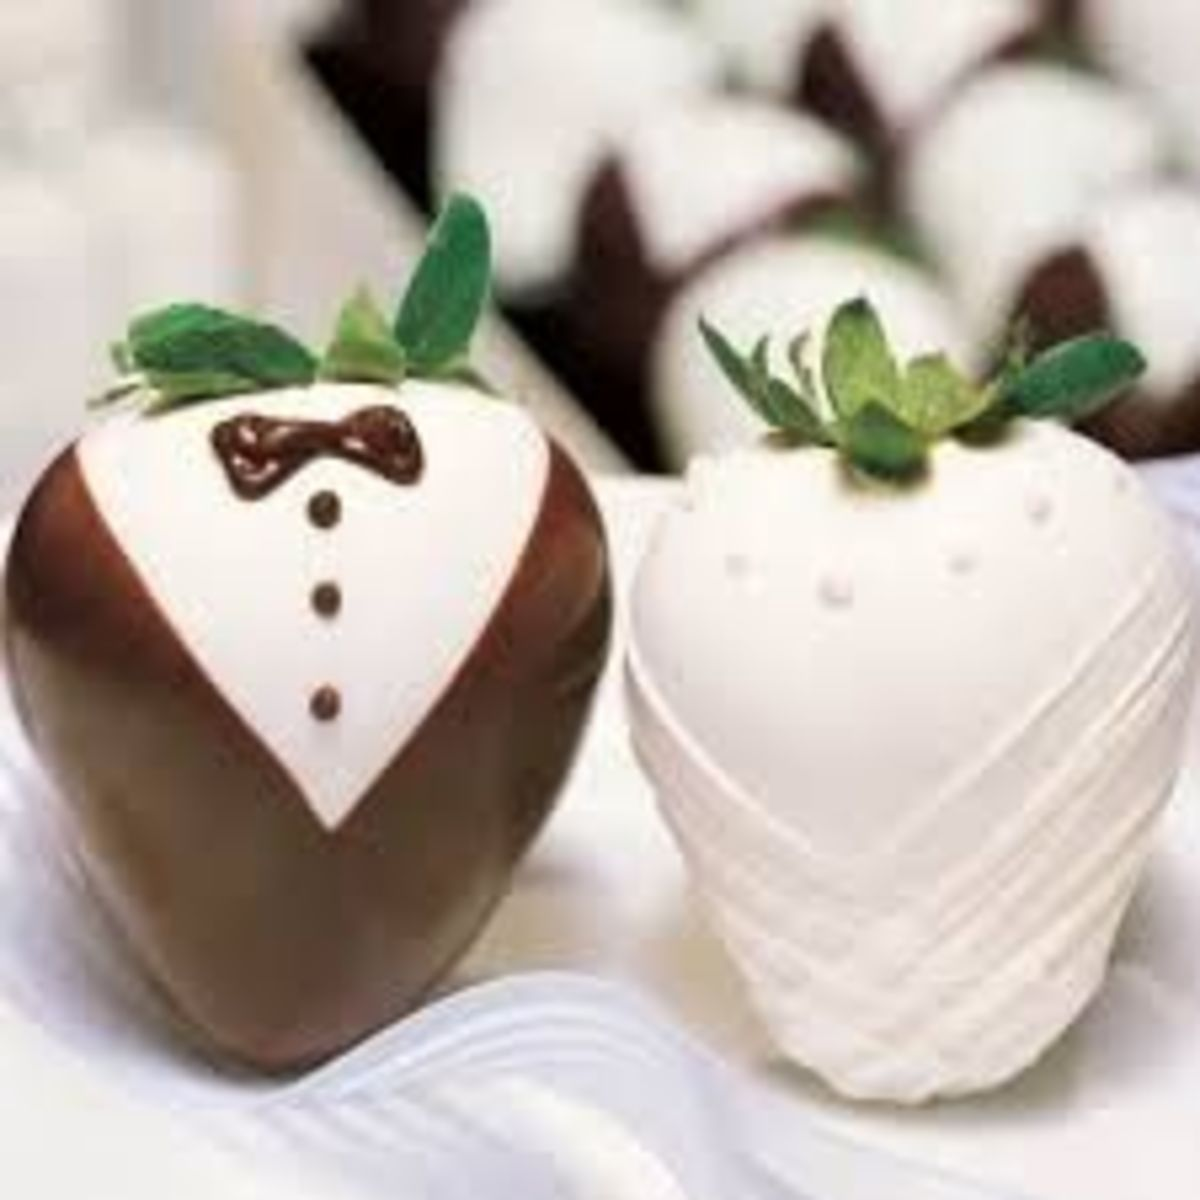 How To Make Tuxedo Chocolate Strawberries